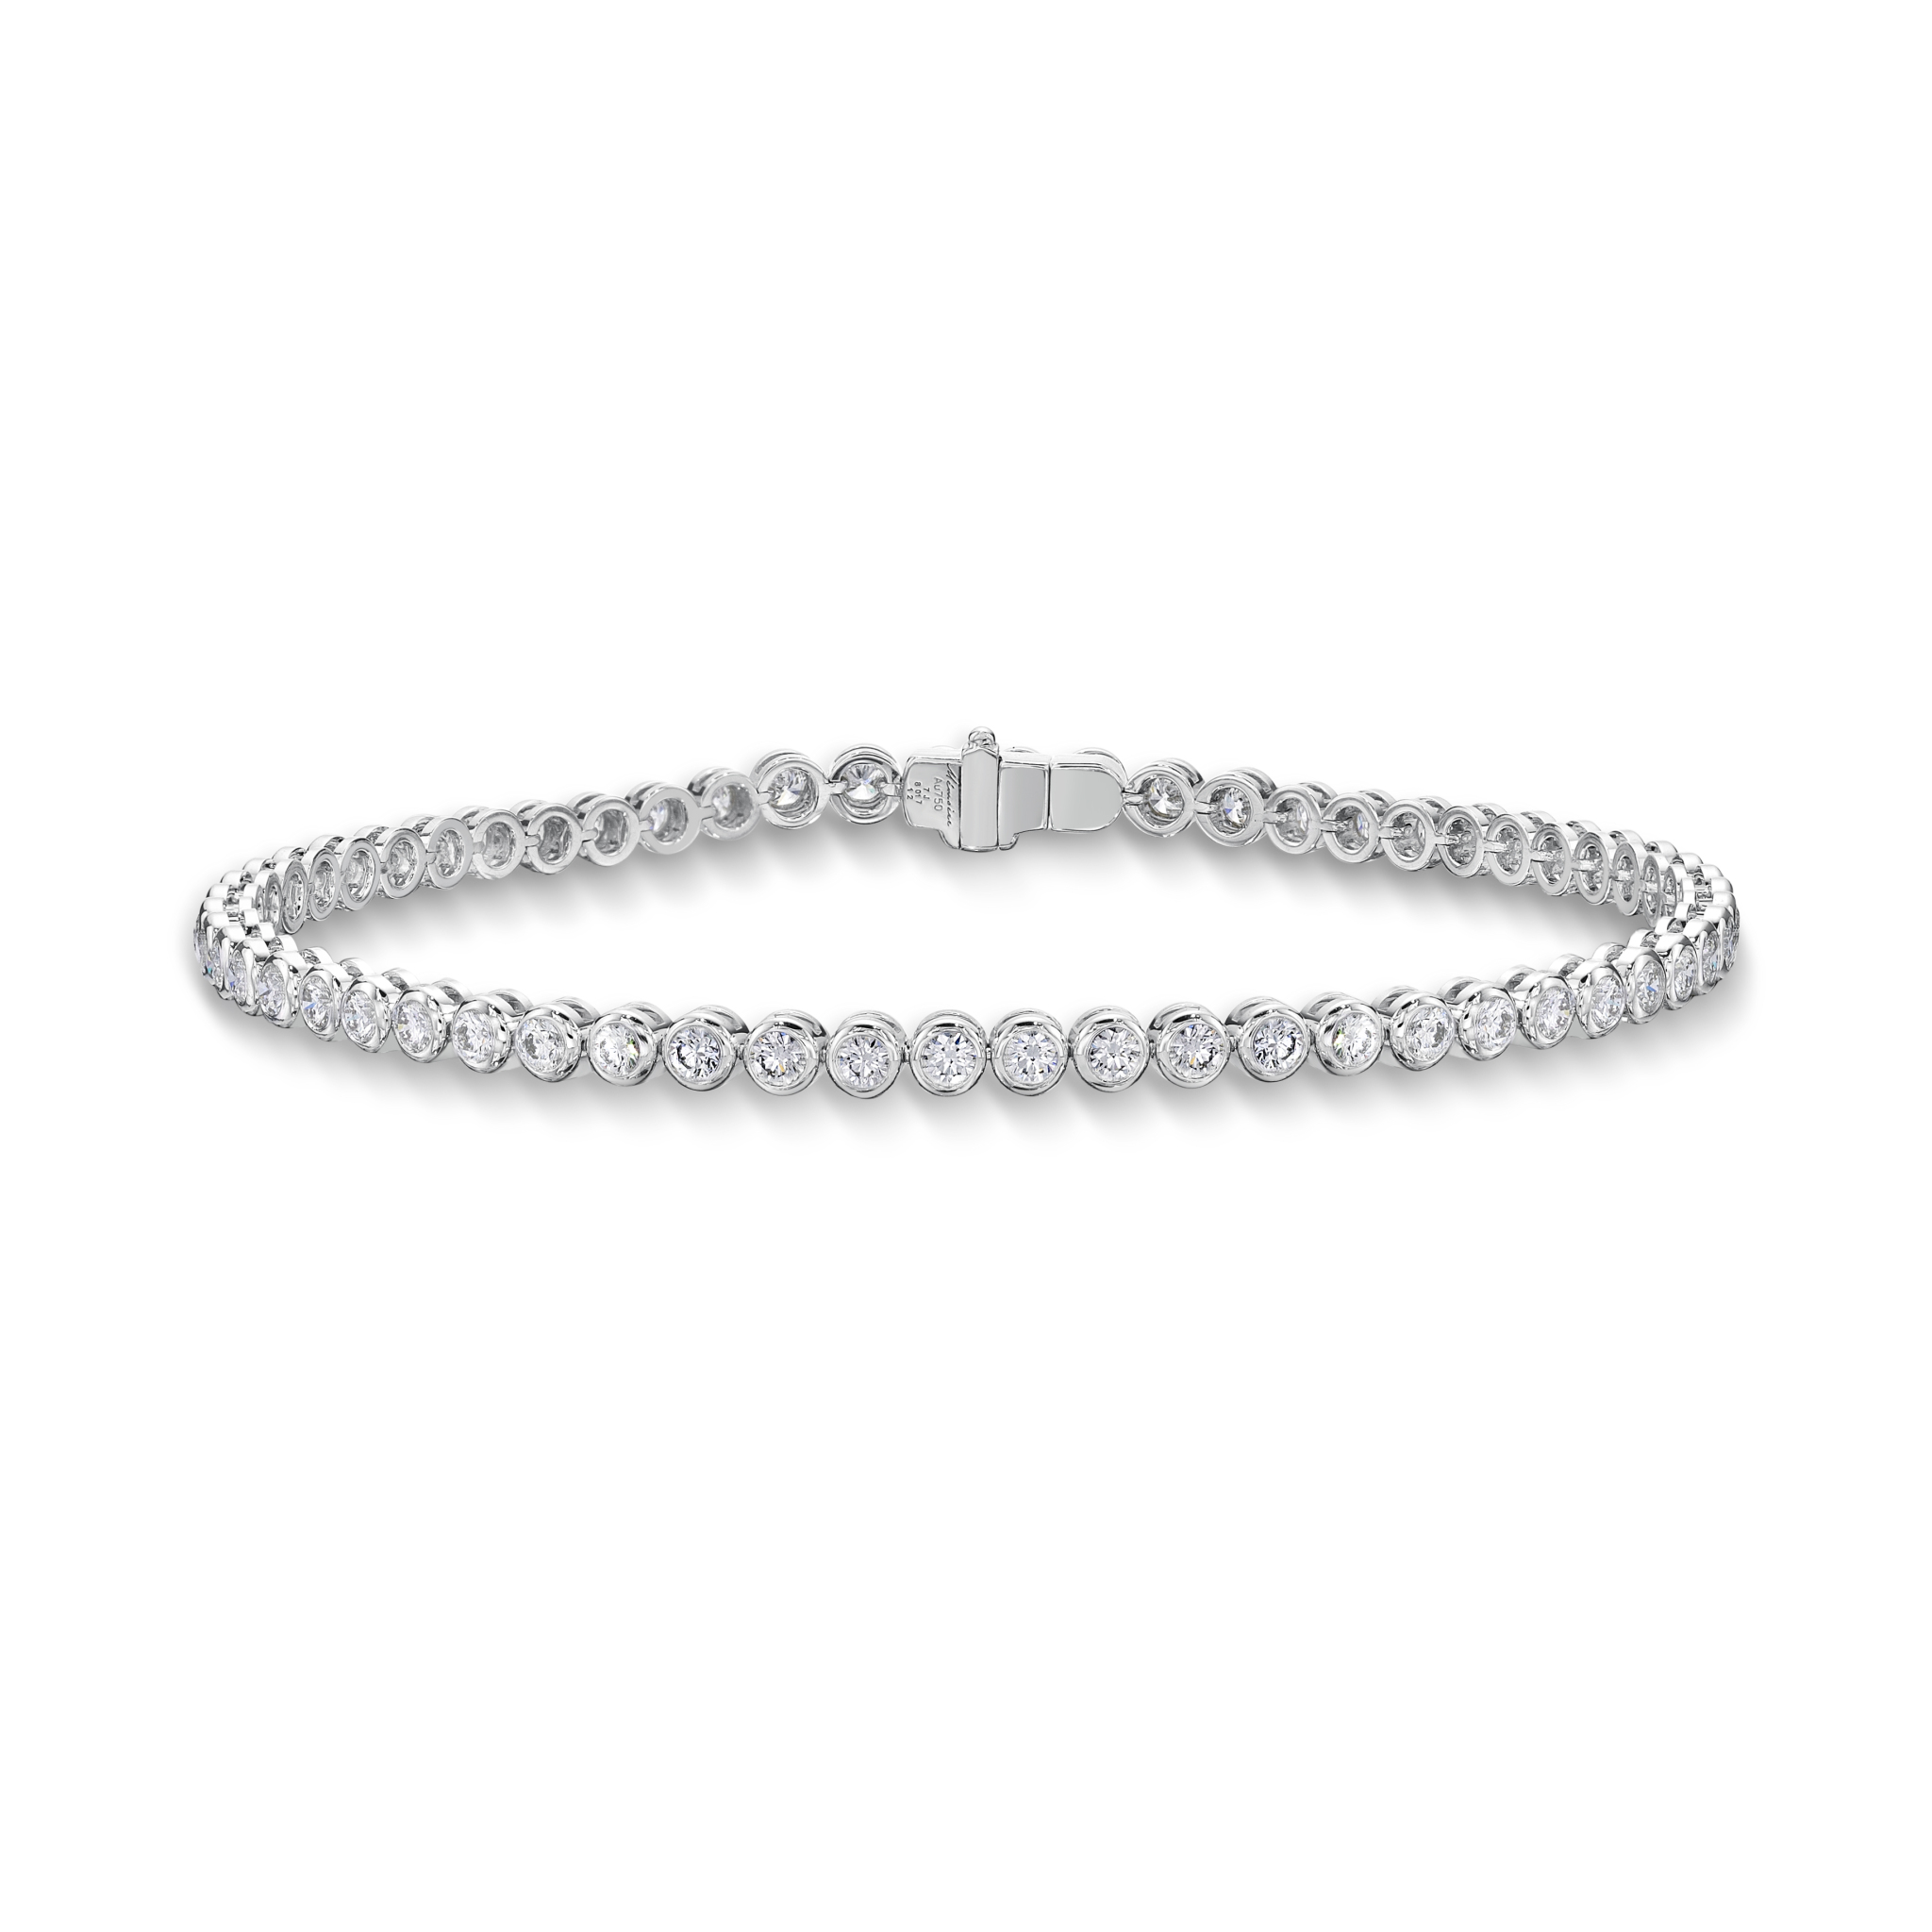 Memoire 18ct White Gold 1.50 Carat Diamond Bezal Tennis Bracelet